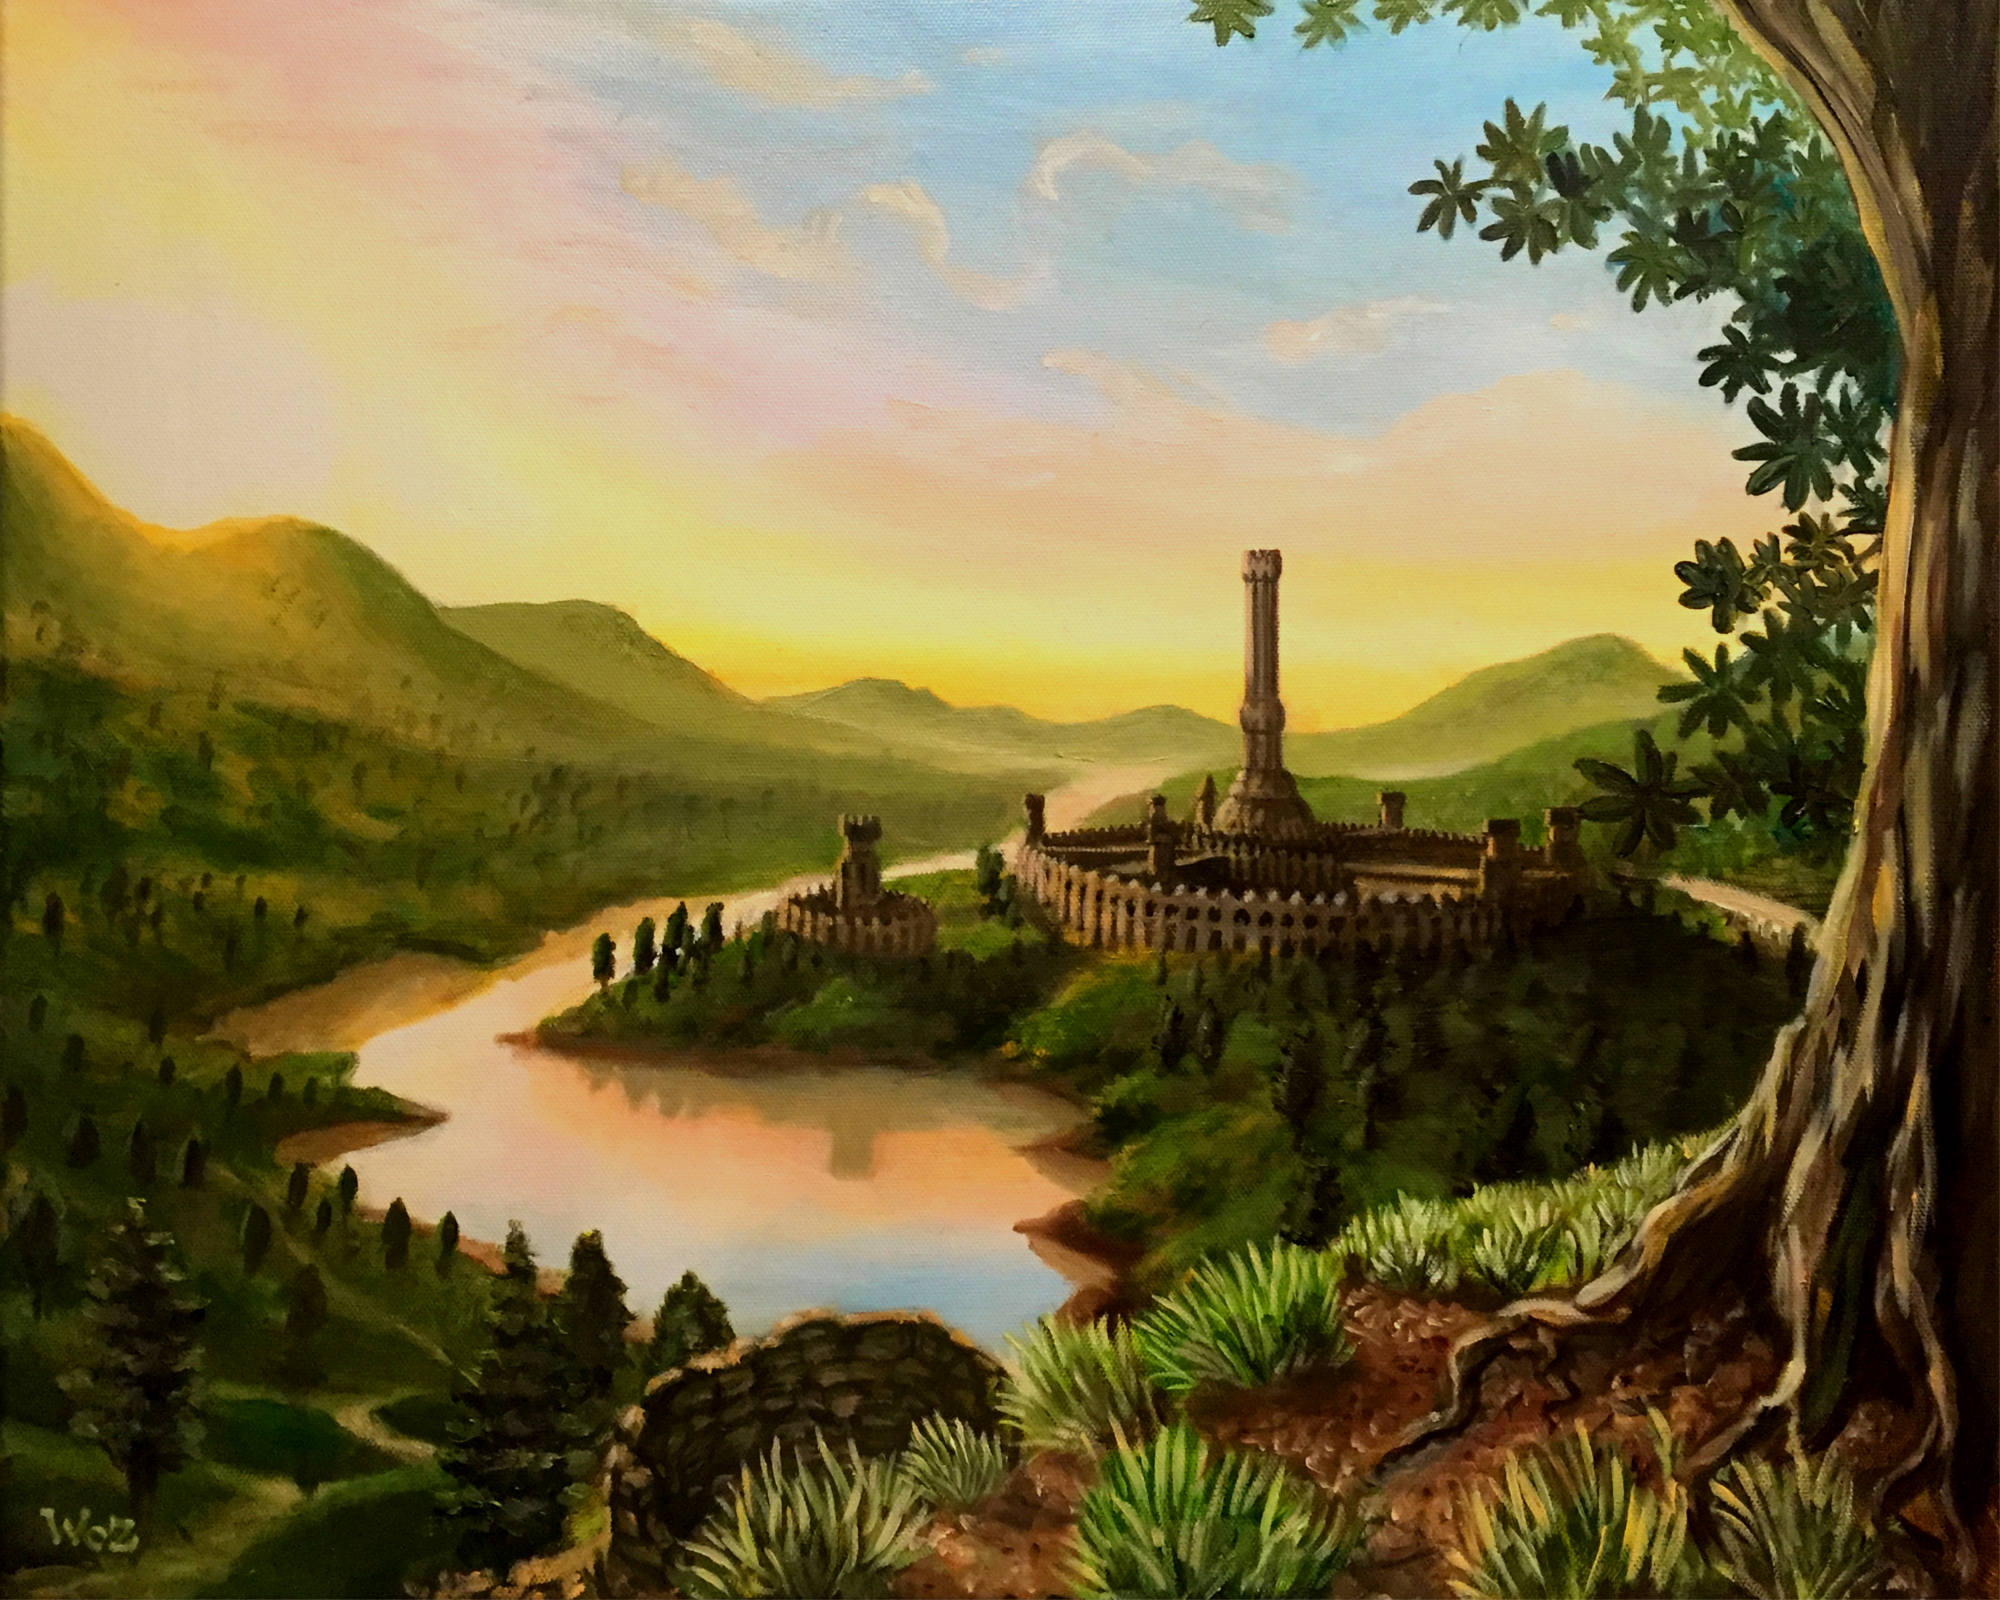 Oil Painting Commission The Elder Scrolls Hand Made Wall